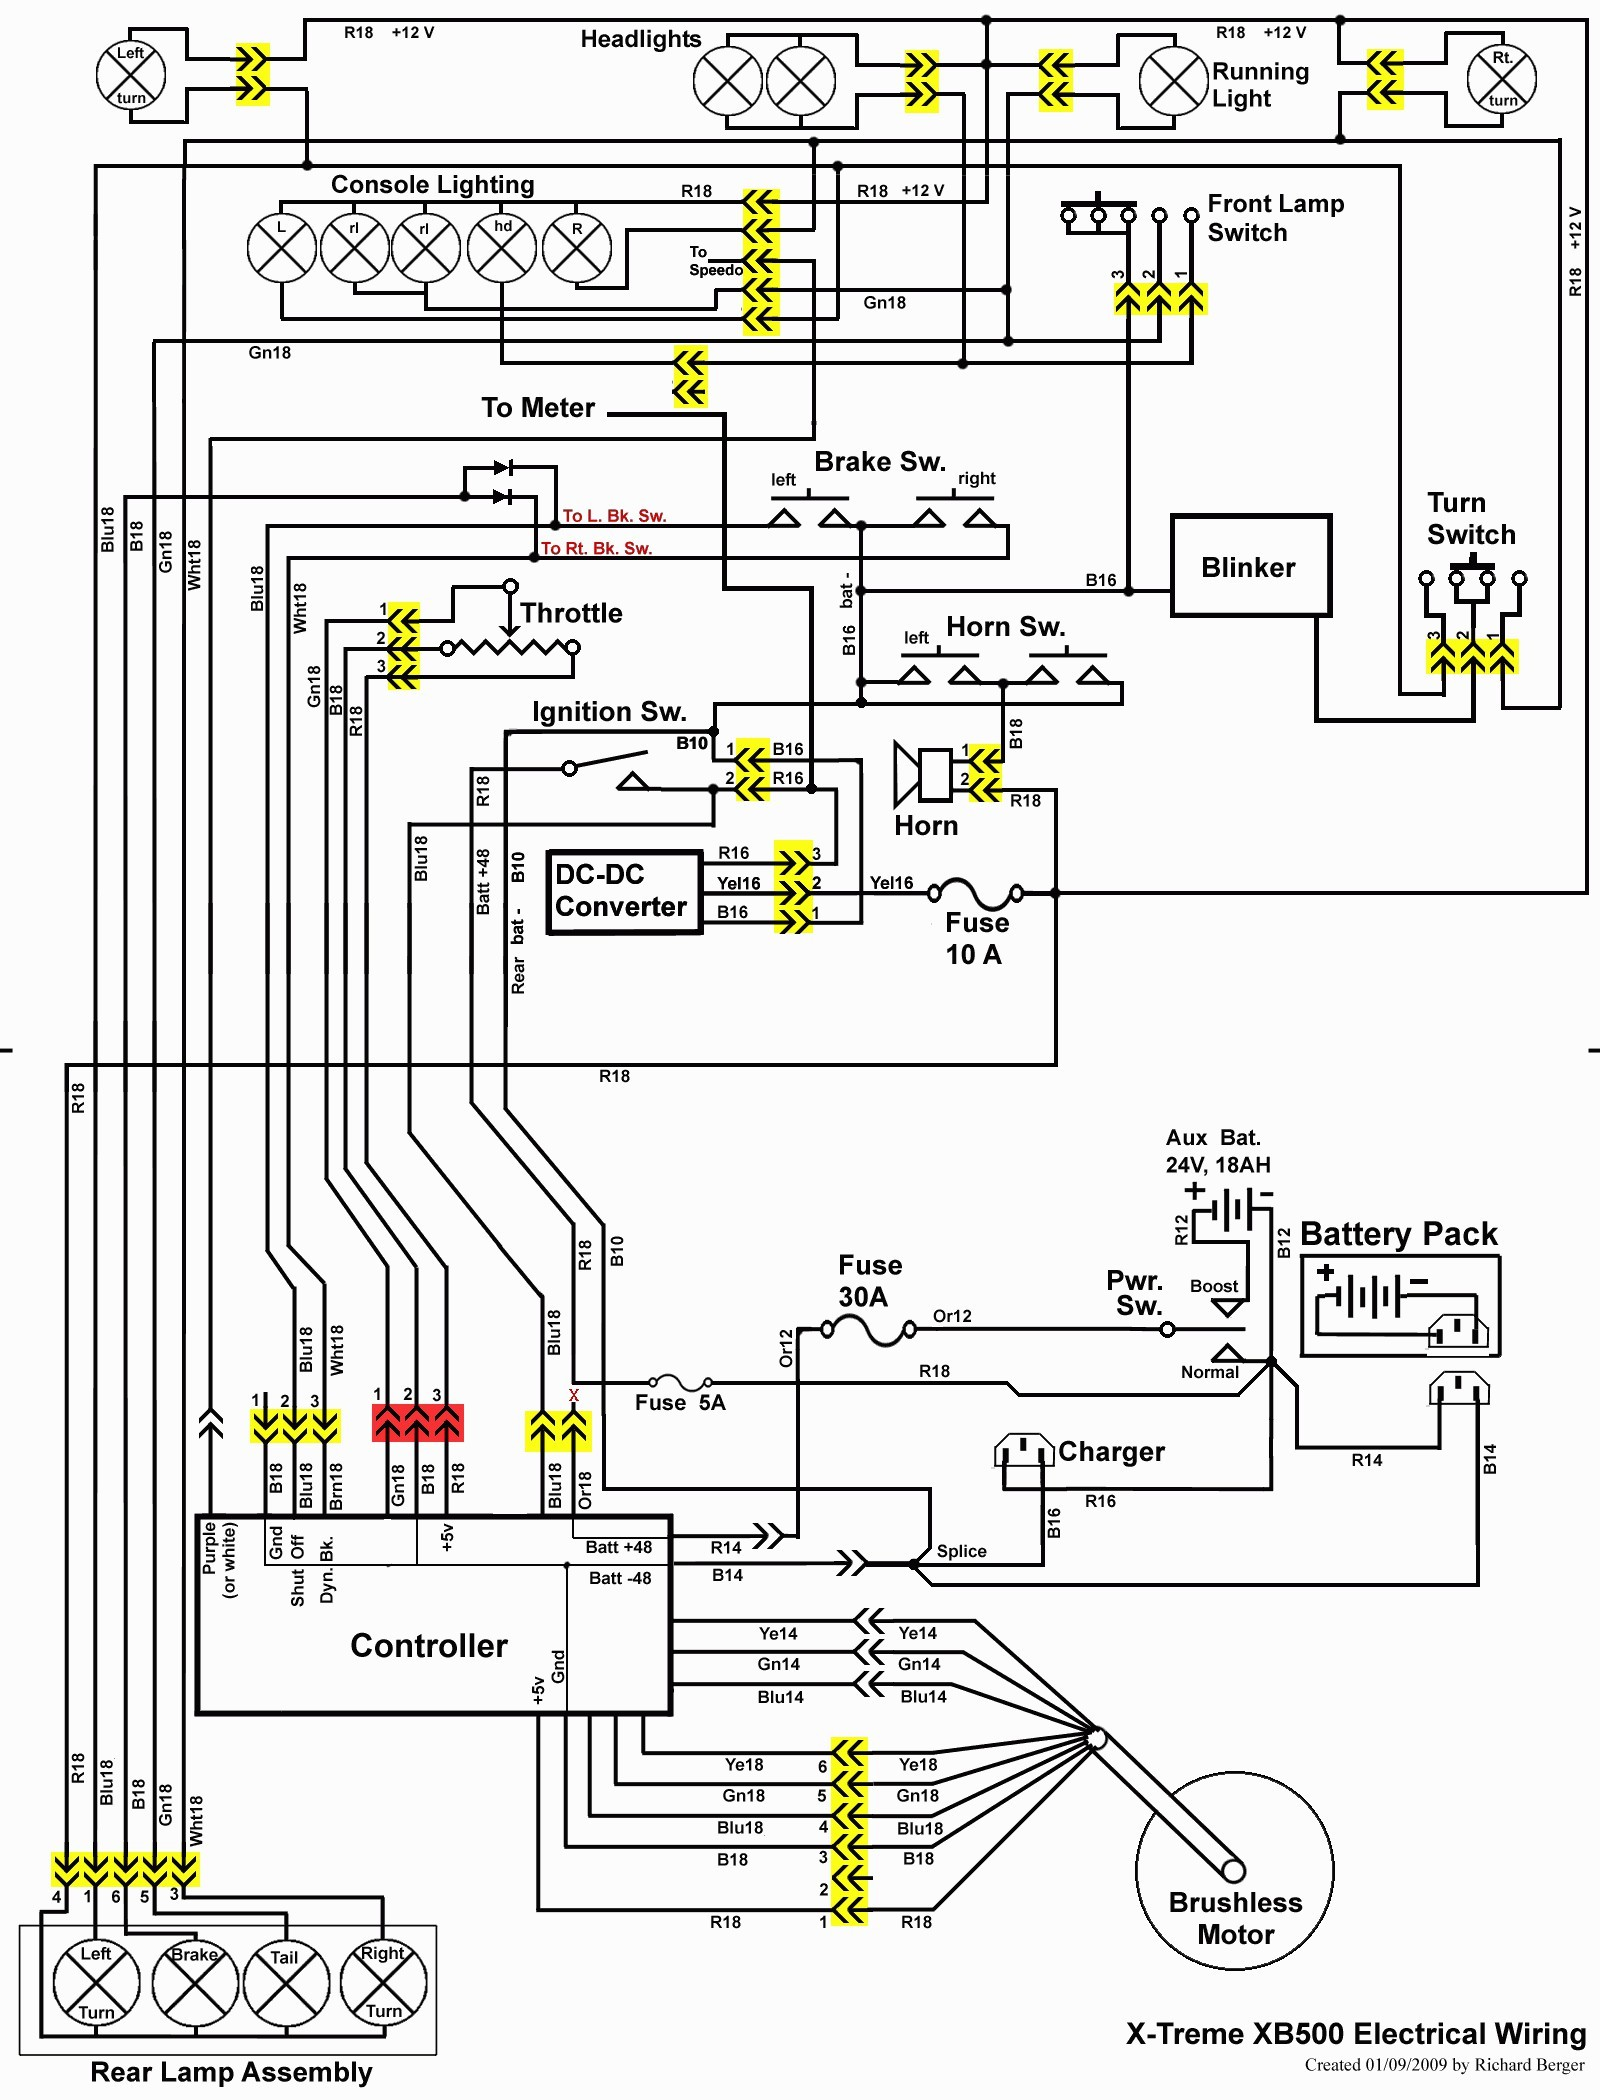 curtis 1264 wiring diagram